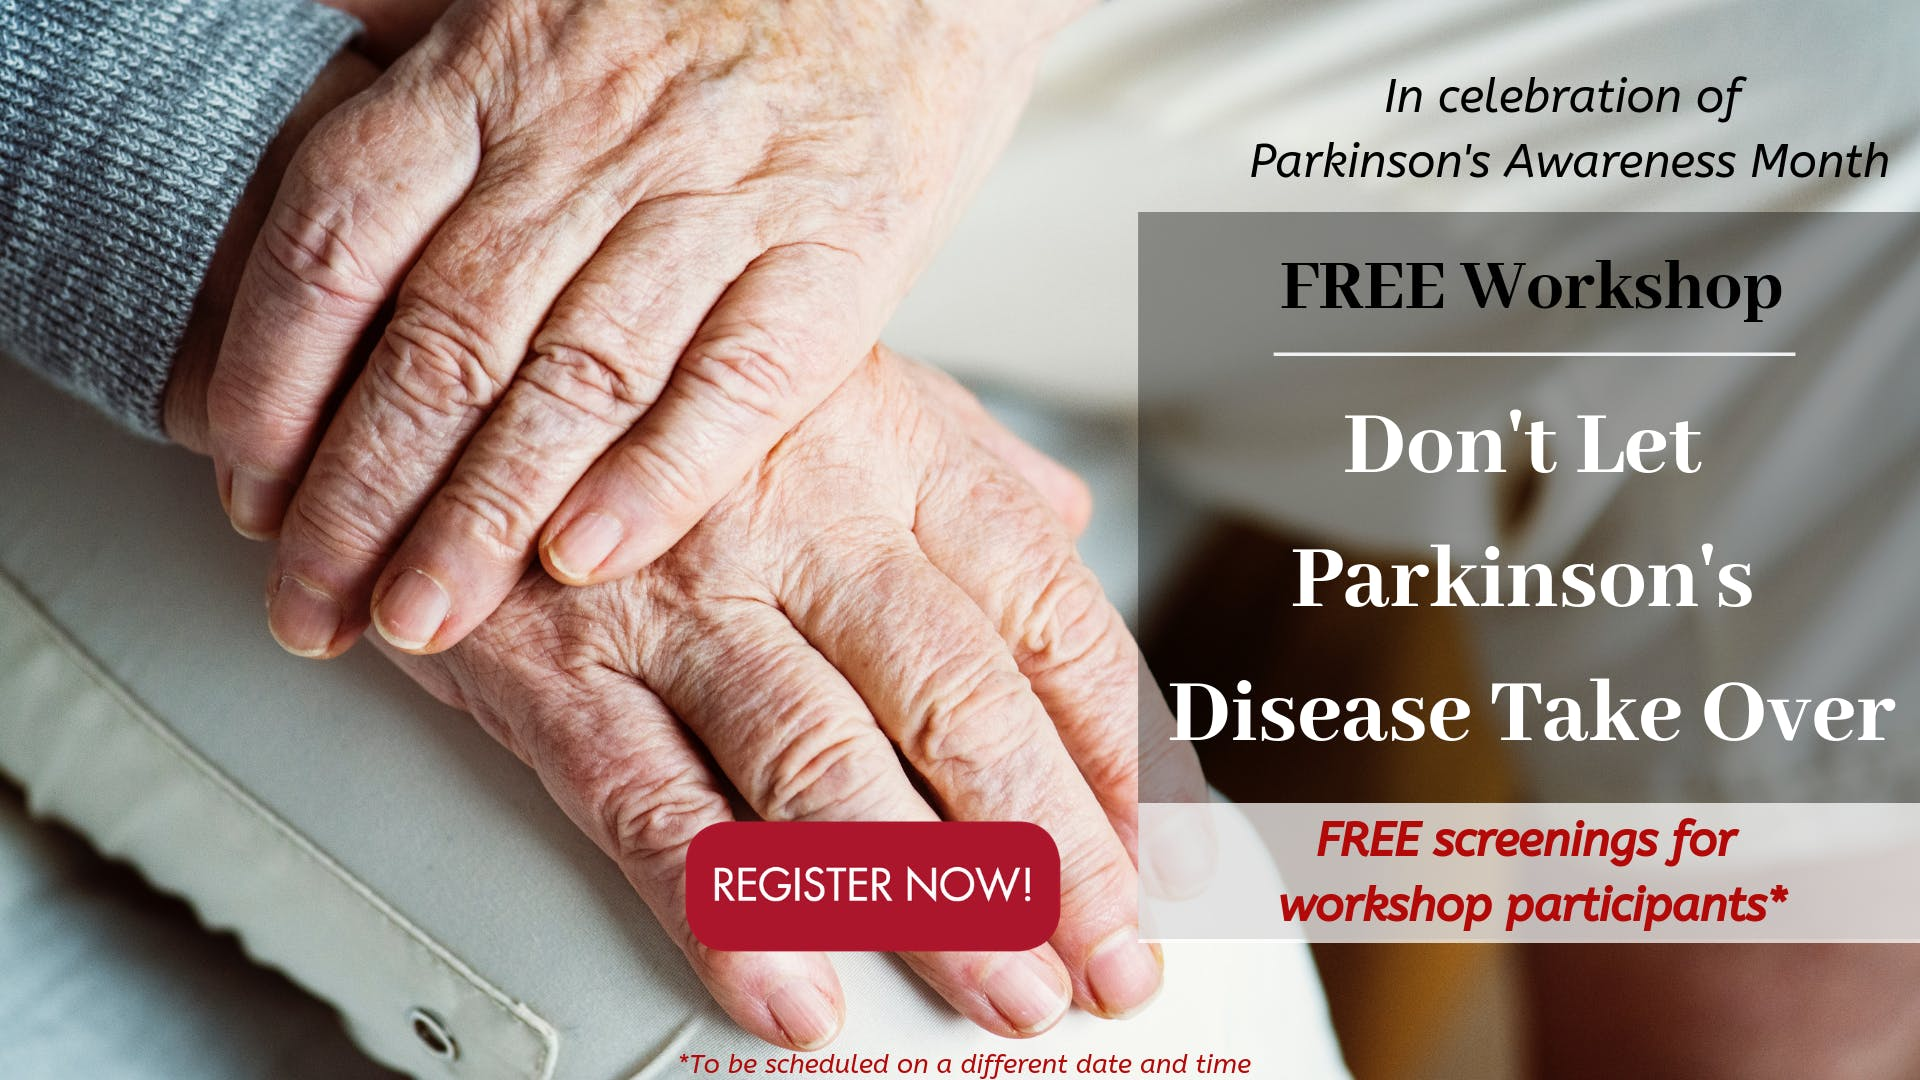 Free Parkinson's Disease Workshop to Celebrate Parkinson's Awareness Month